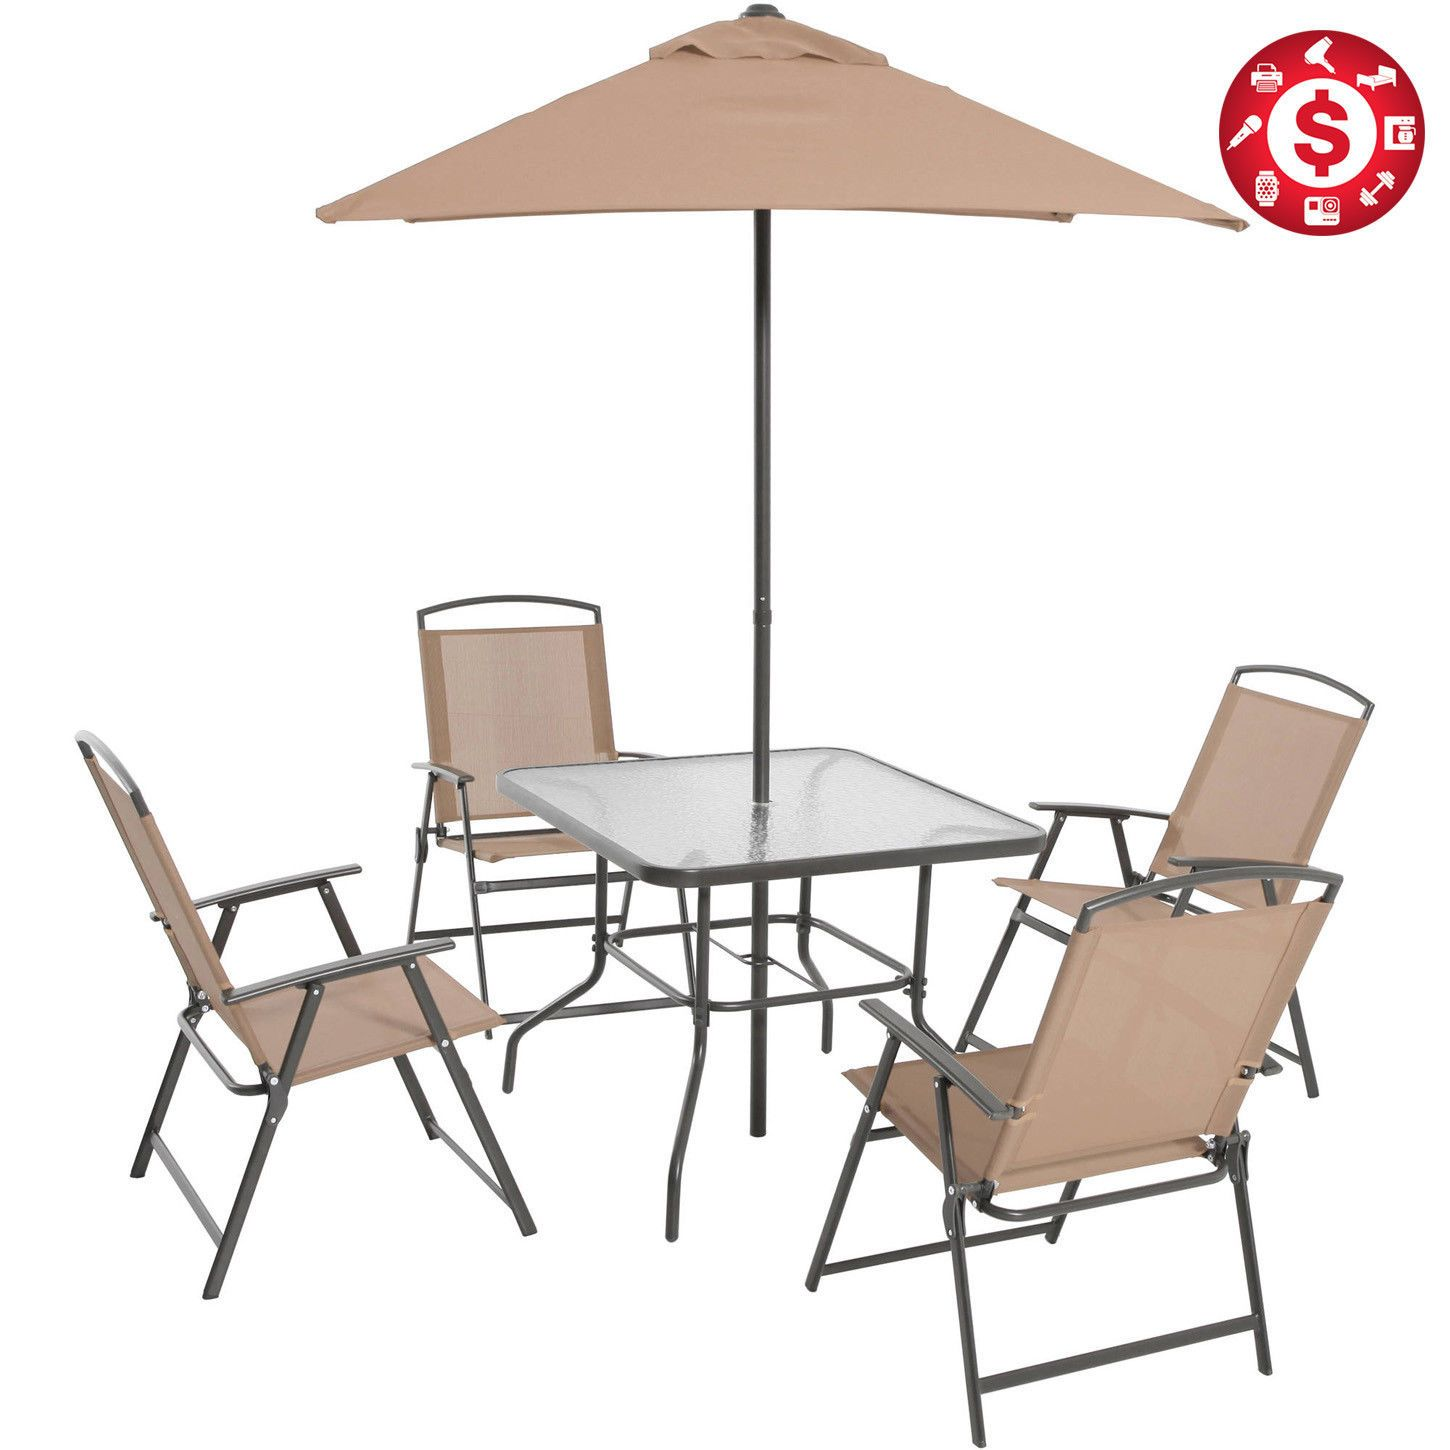 Peachy 6 Piece Patio Dining Set Folding Table Chairs Umbrella Uwap Interior Chair Design Uwaporg